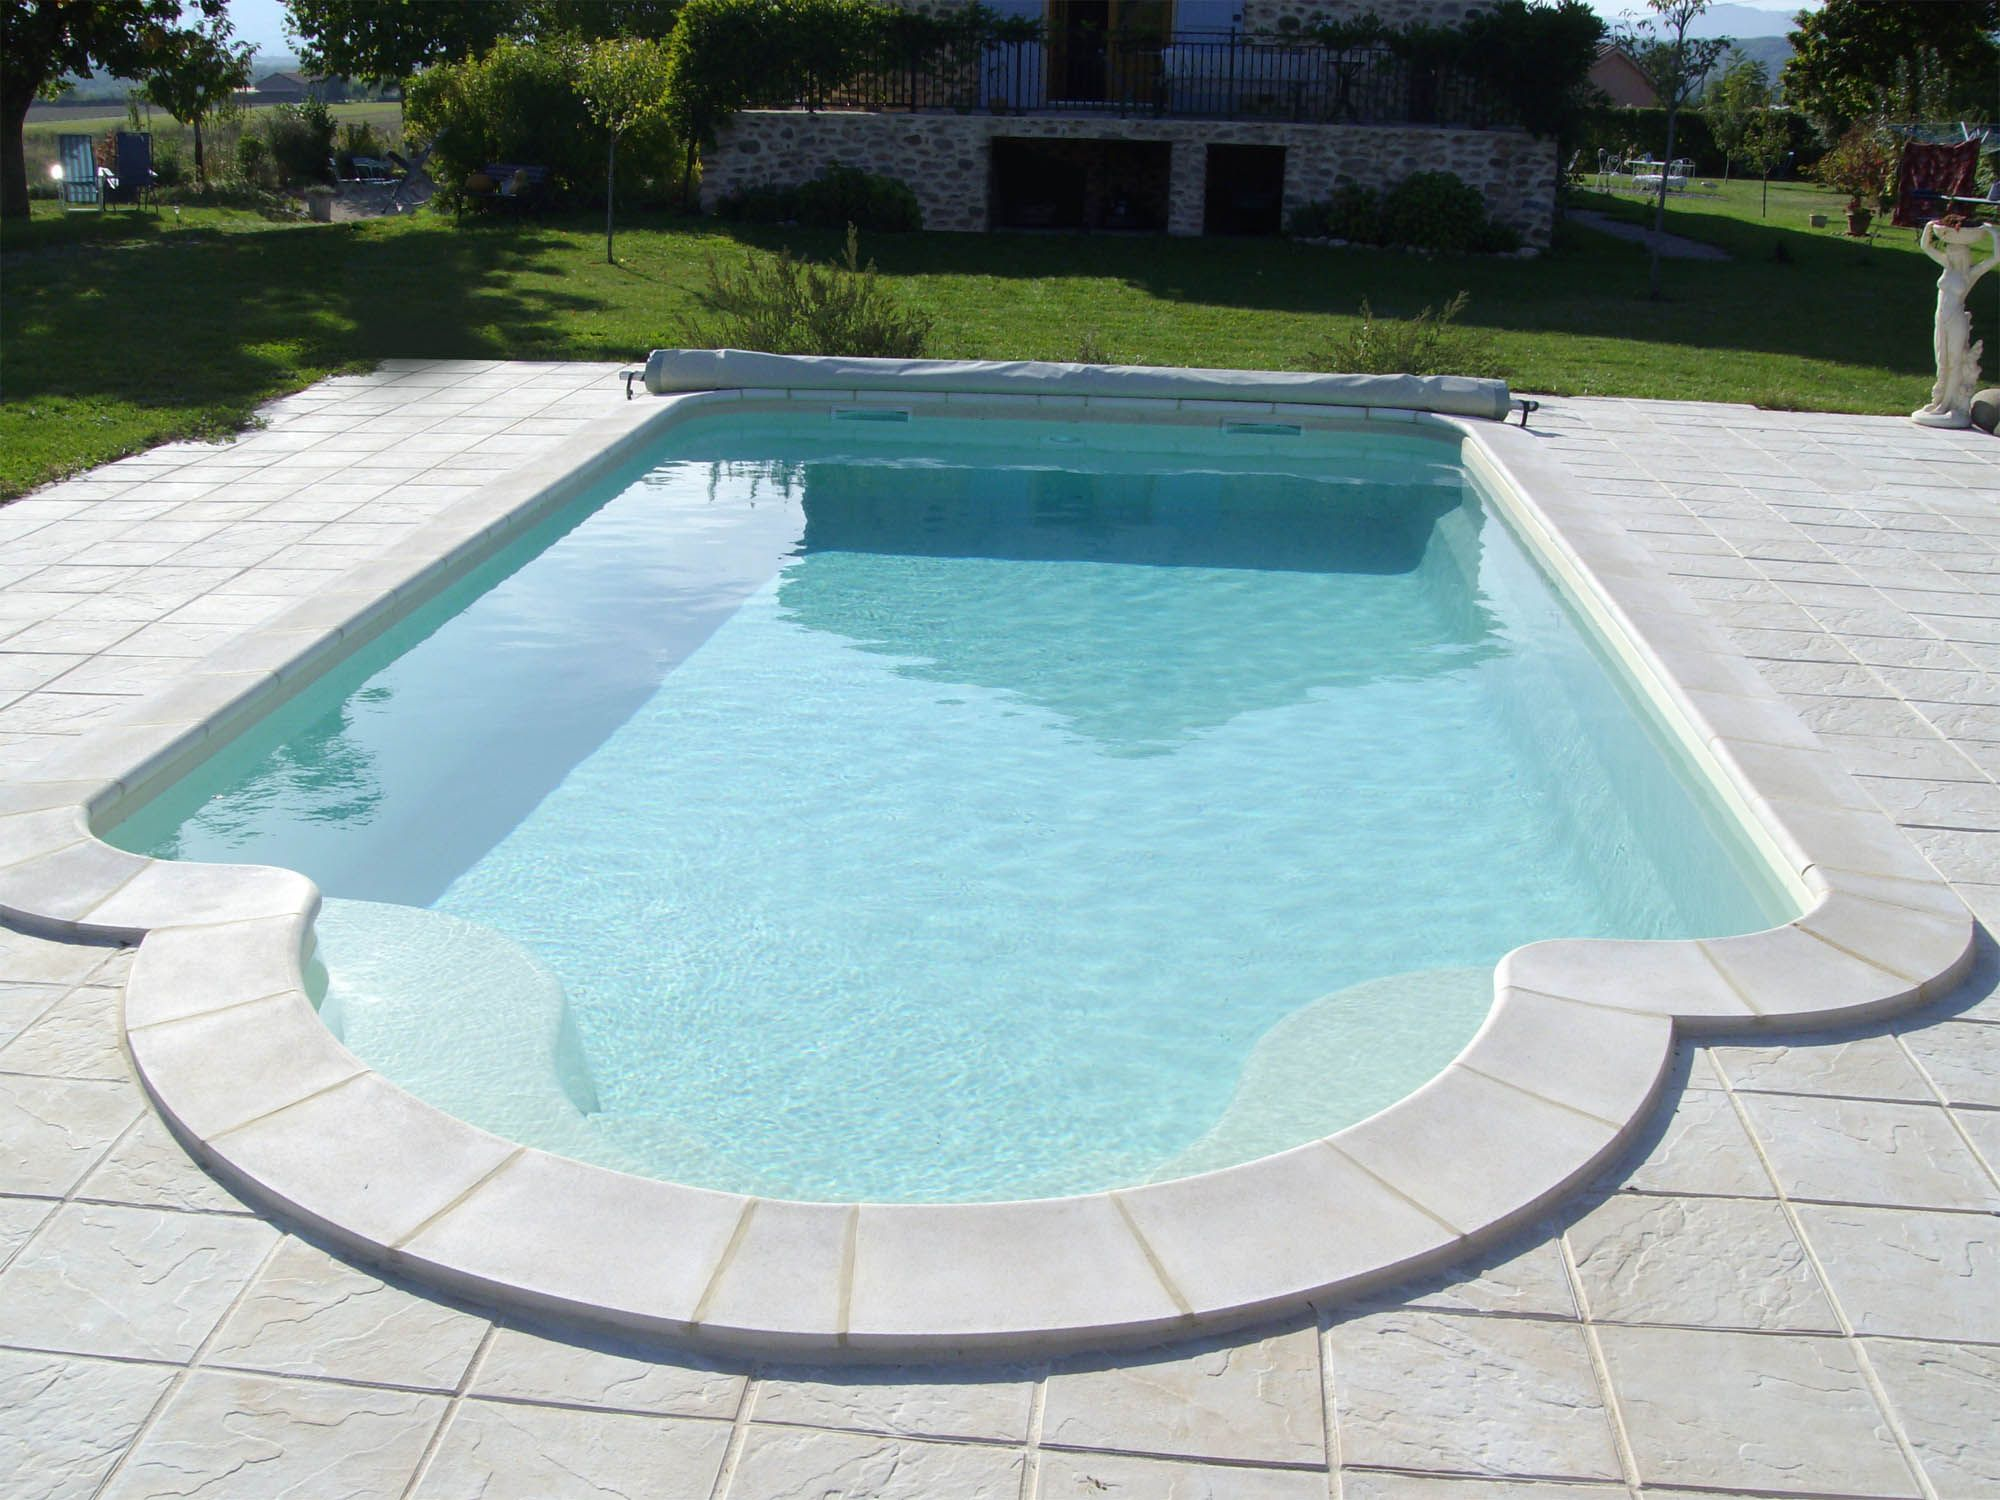 Piscine coque polyester variation fabrication fran aise for Piscine coque polyester portugal